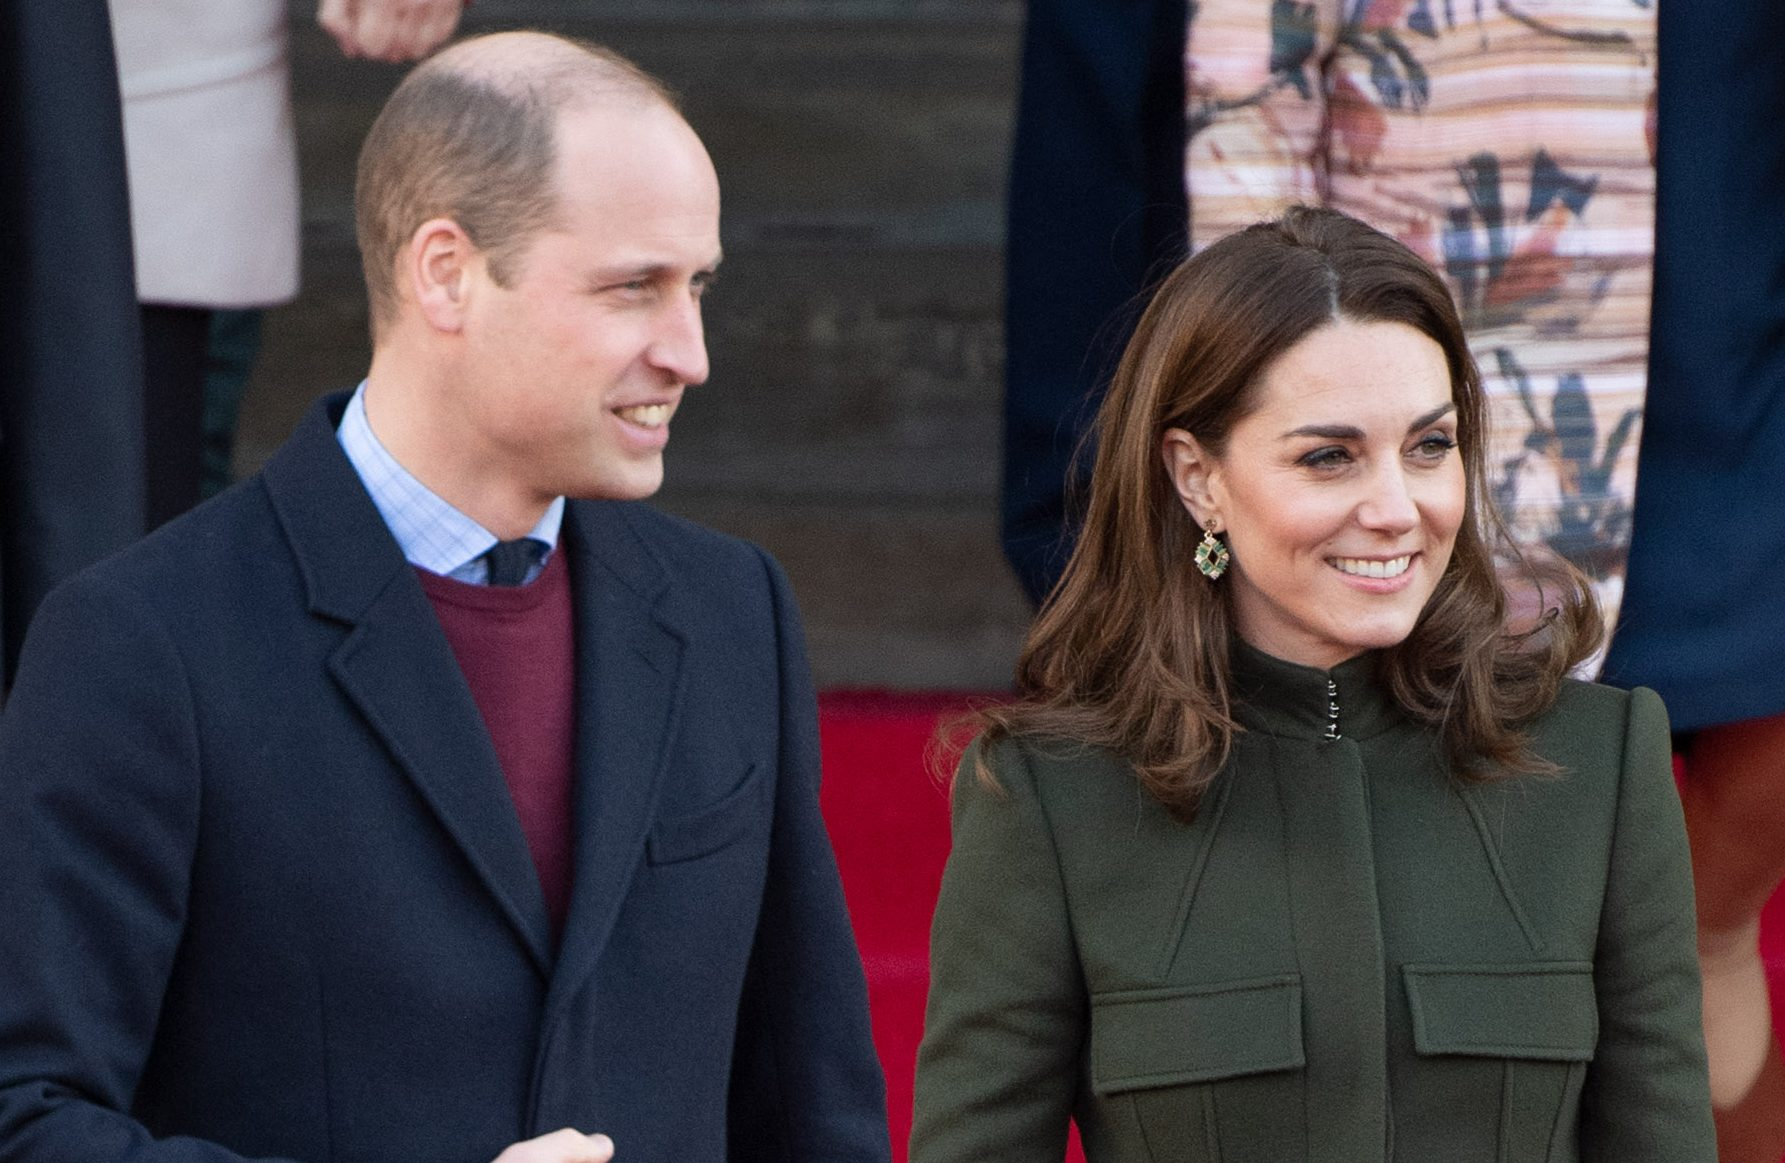 Duke and Duchess of Cambridge replacing Queen at major Palace summit as royal drama rumbles on